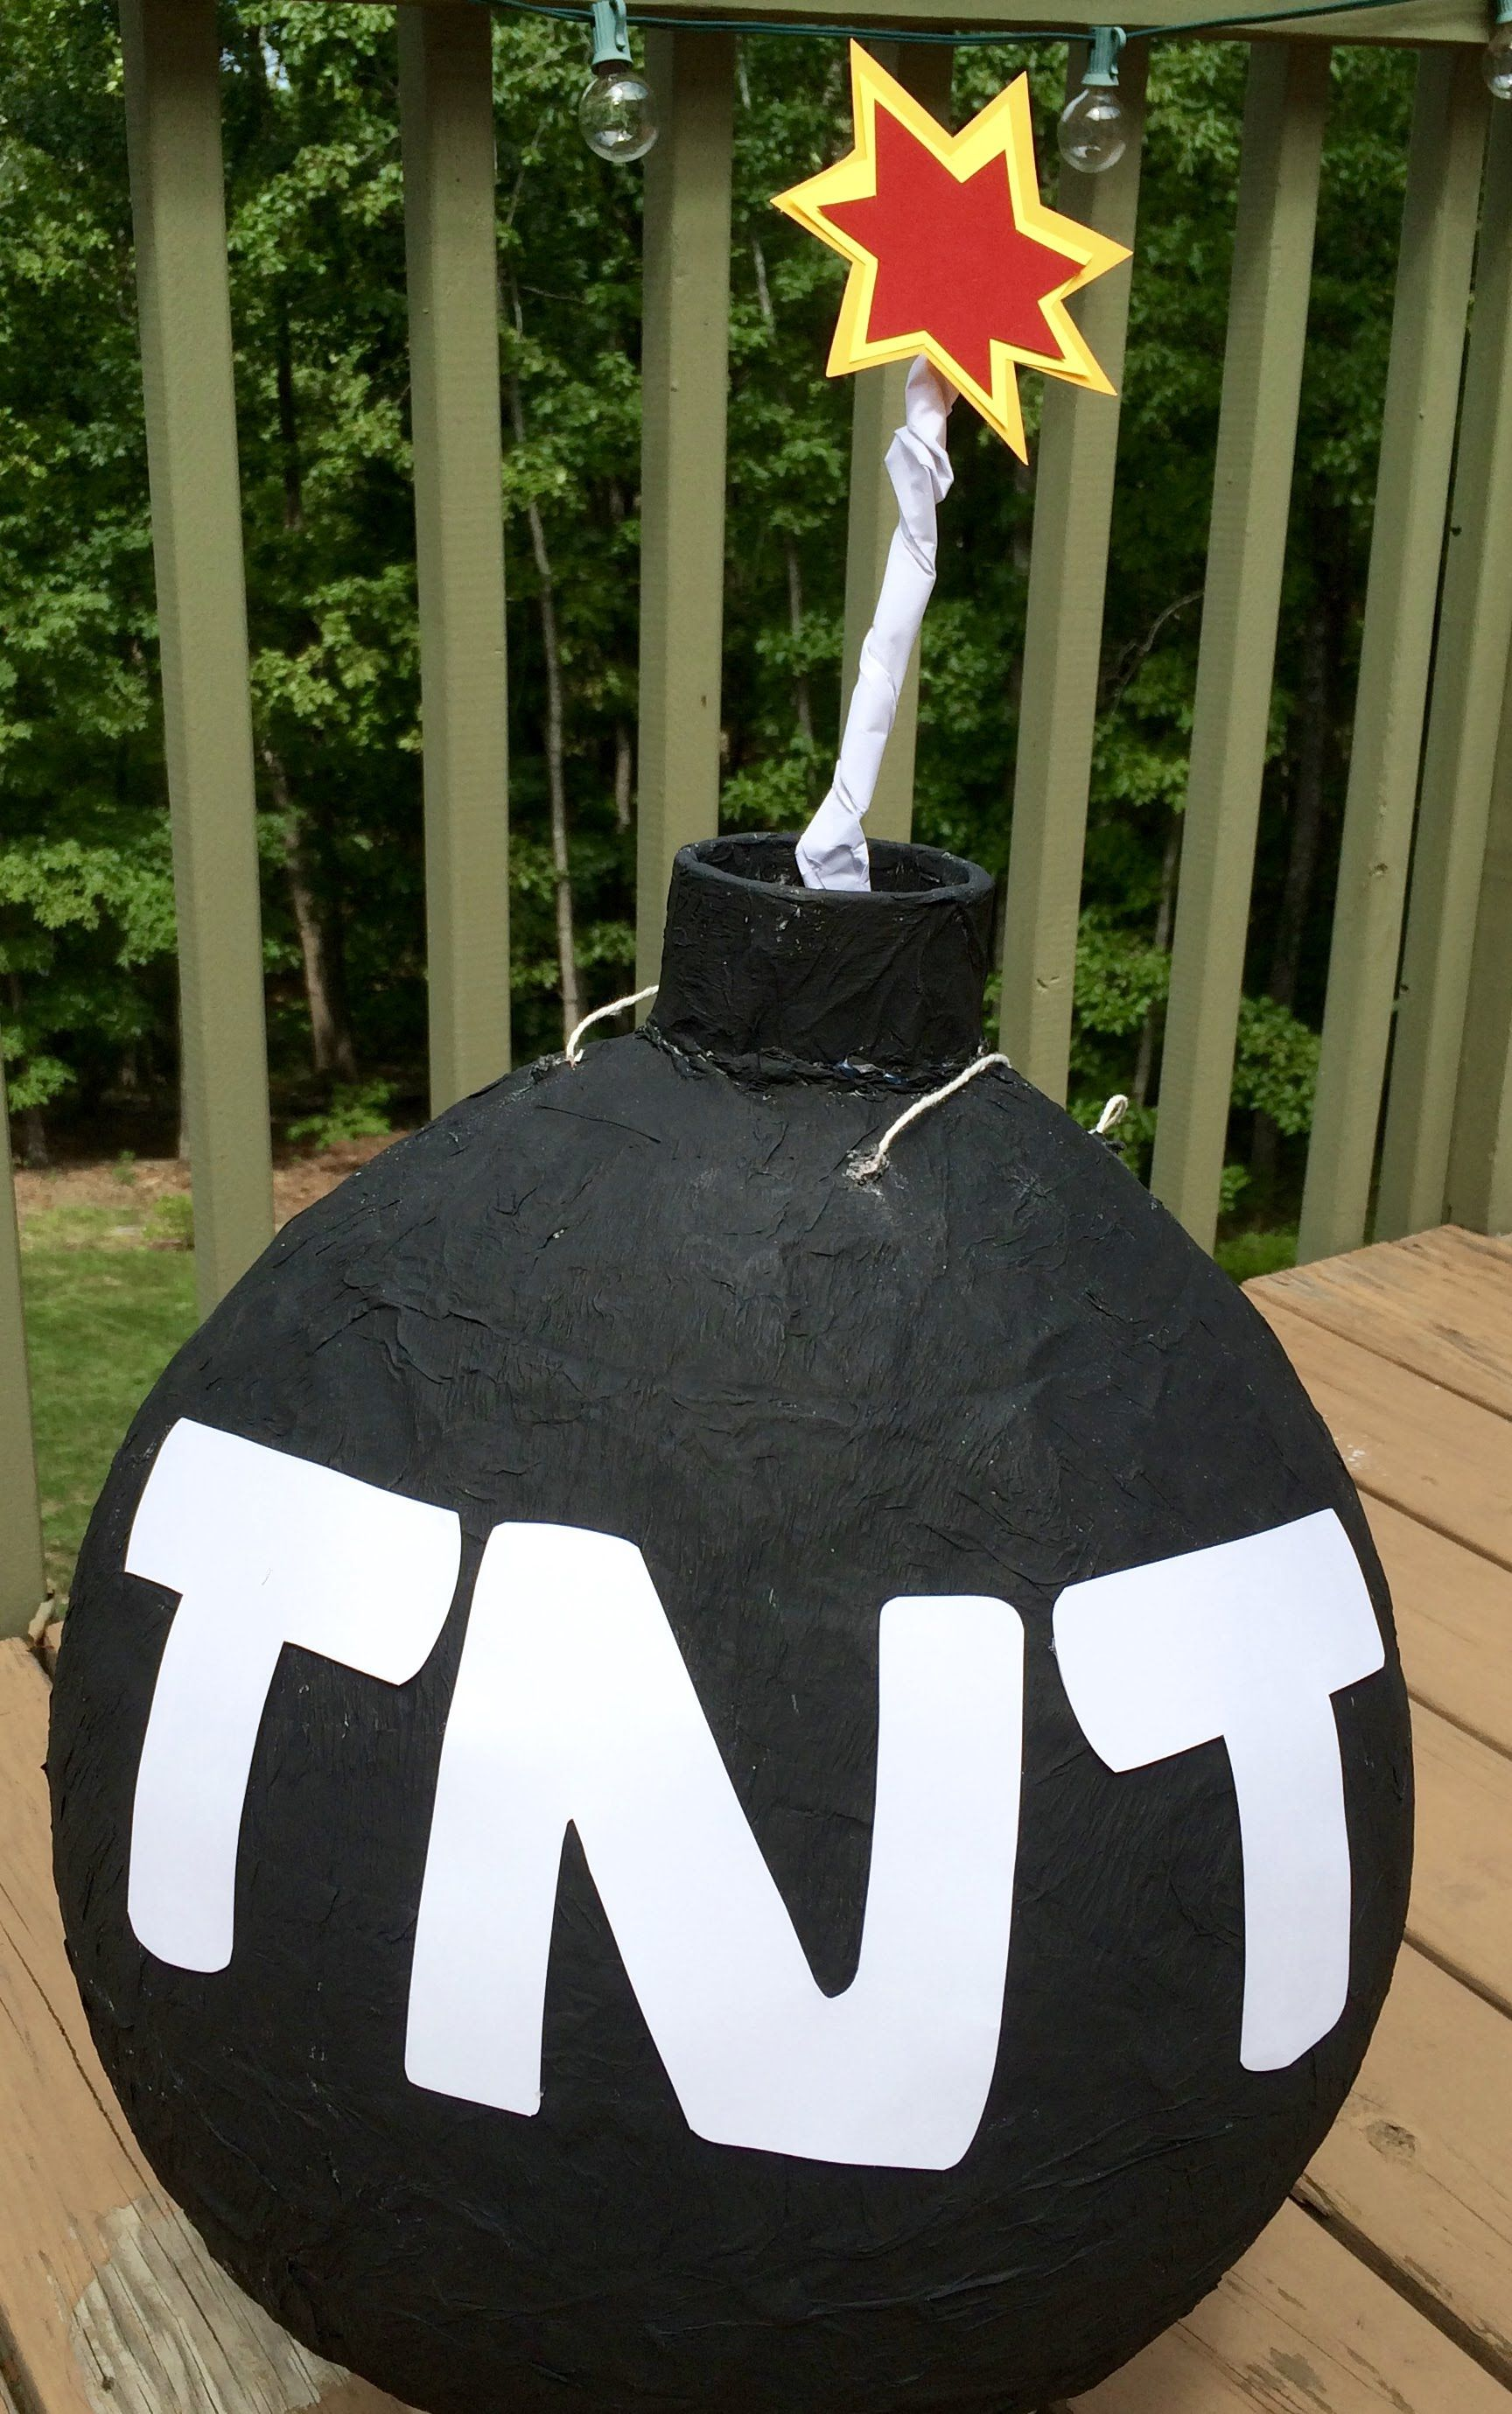 Partyspiele Zur Jugendweihe Diy How To Make A Tnt Bomb Pinata Fete De La Fete Pinterest